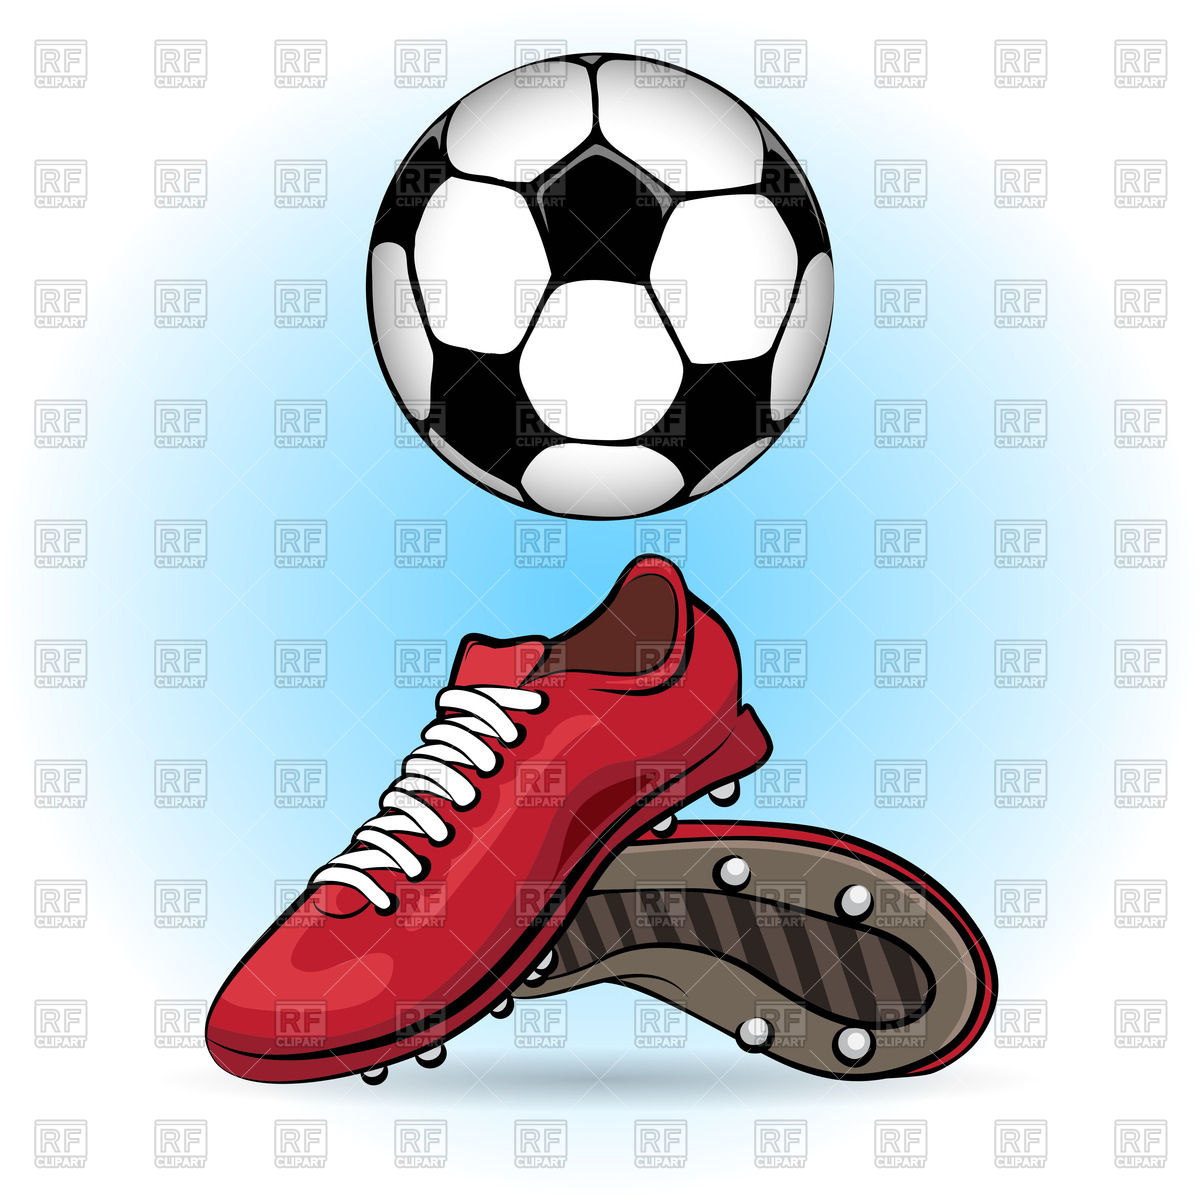 Soccer ball clipart eps vector Sporting shoes and soccer ball - football boots Vector Image ... vector